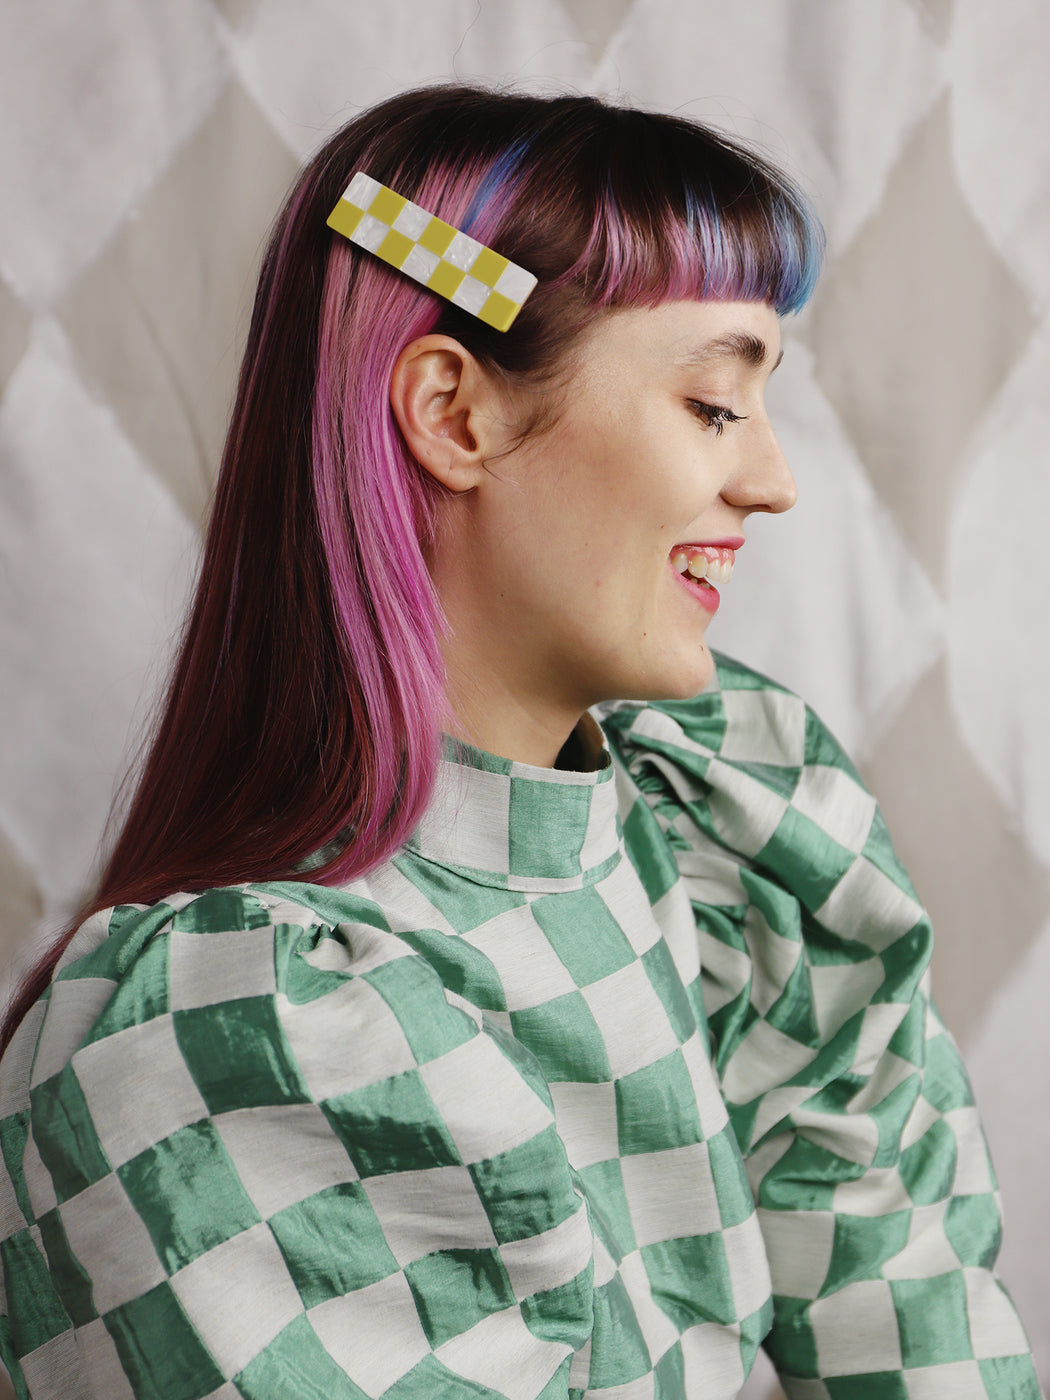 Sofia Hair Clip | Statement jewellery handmade in the U.K. by Wolf & Moon